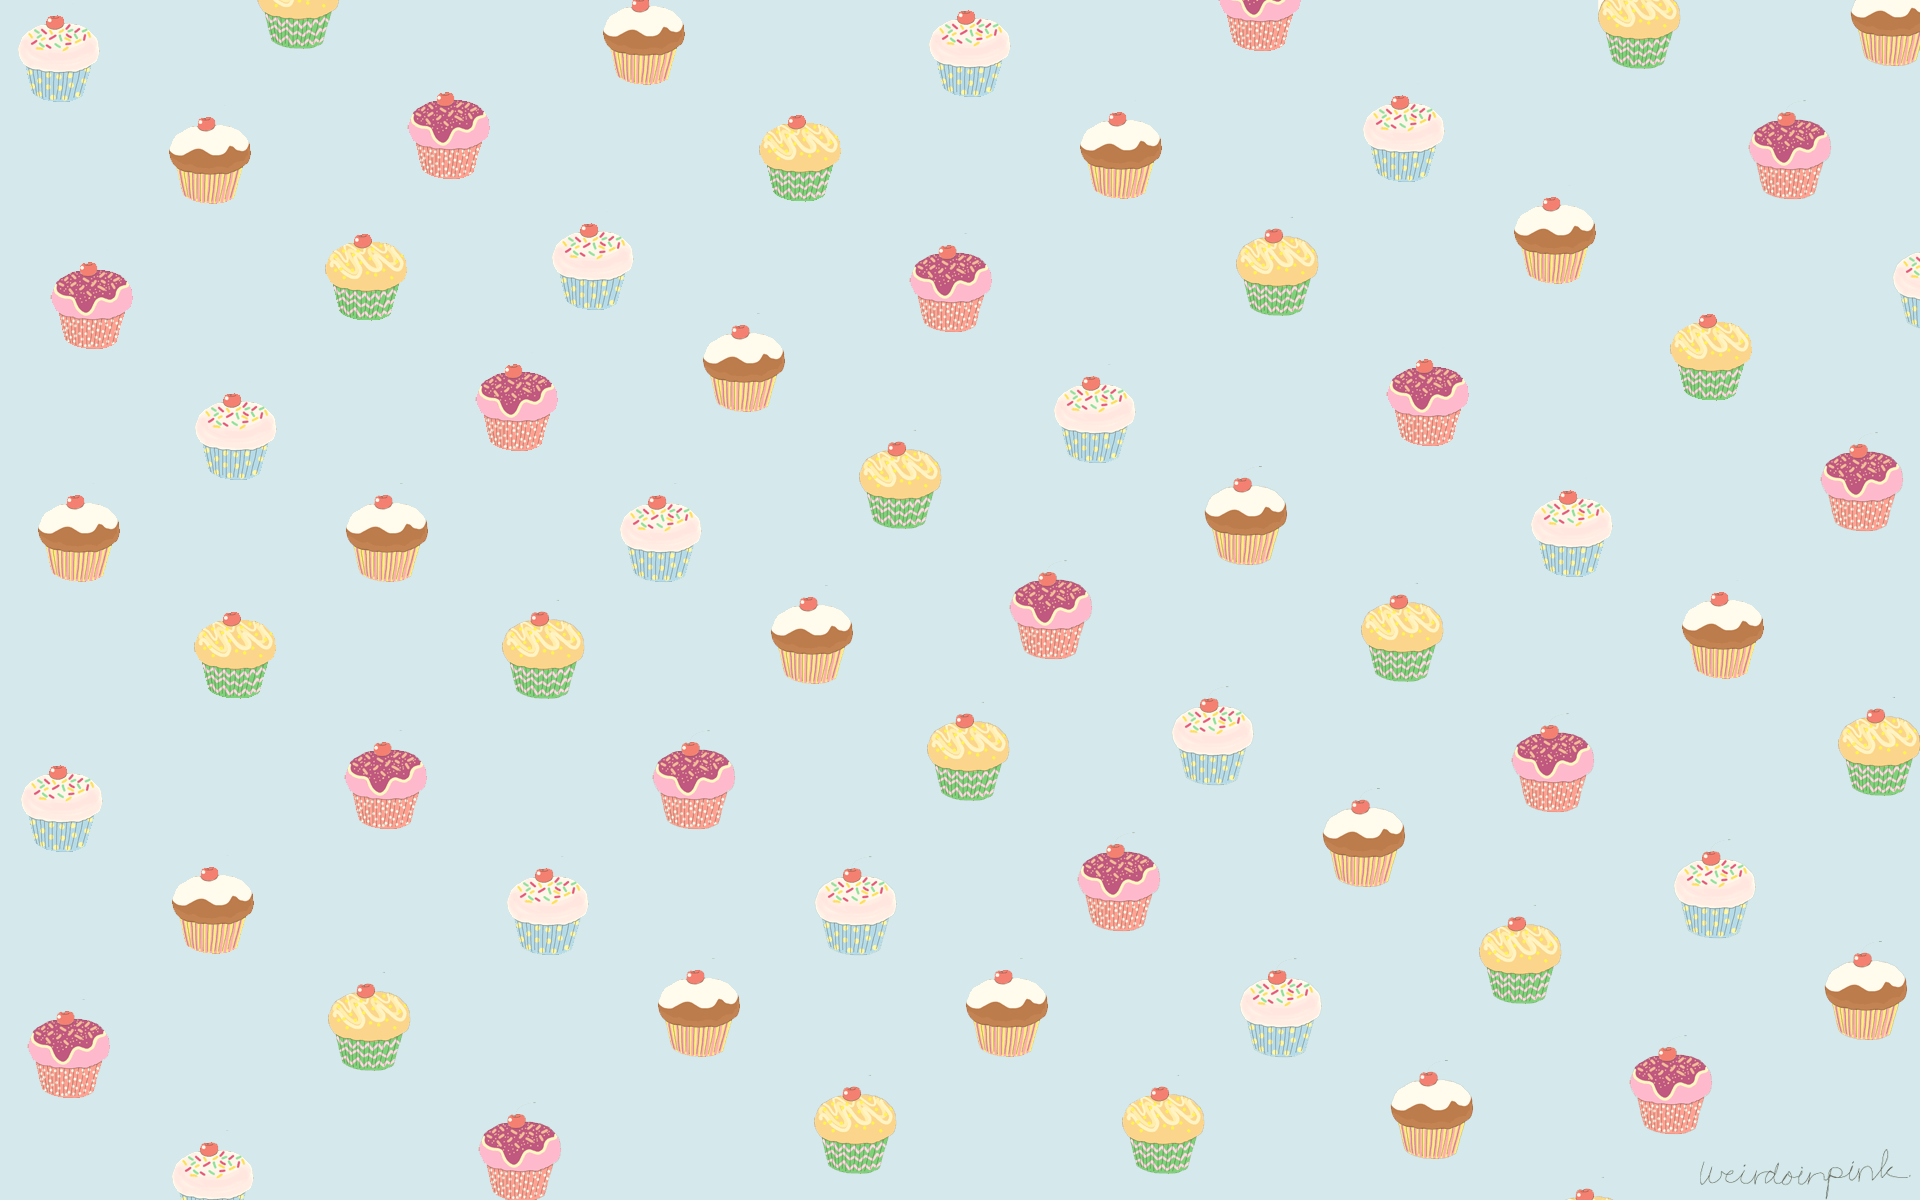 Cupcake Wallpapers 1920x1200